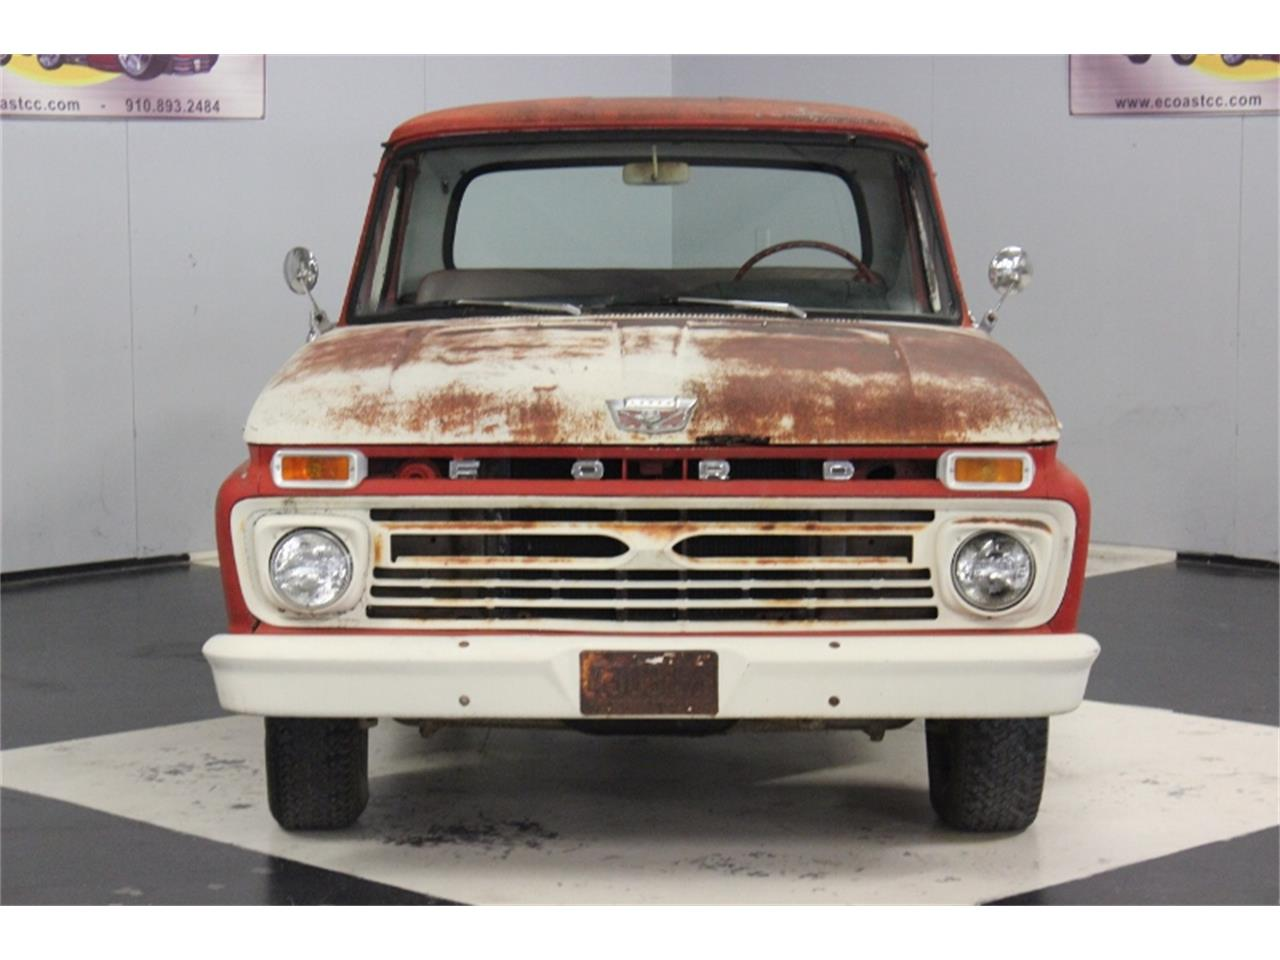 1966 Ford F100 for sale in Lillington, NC – photo 30